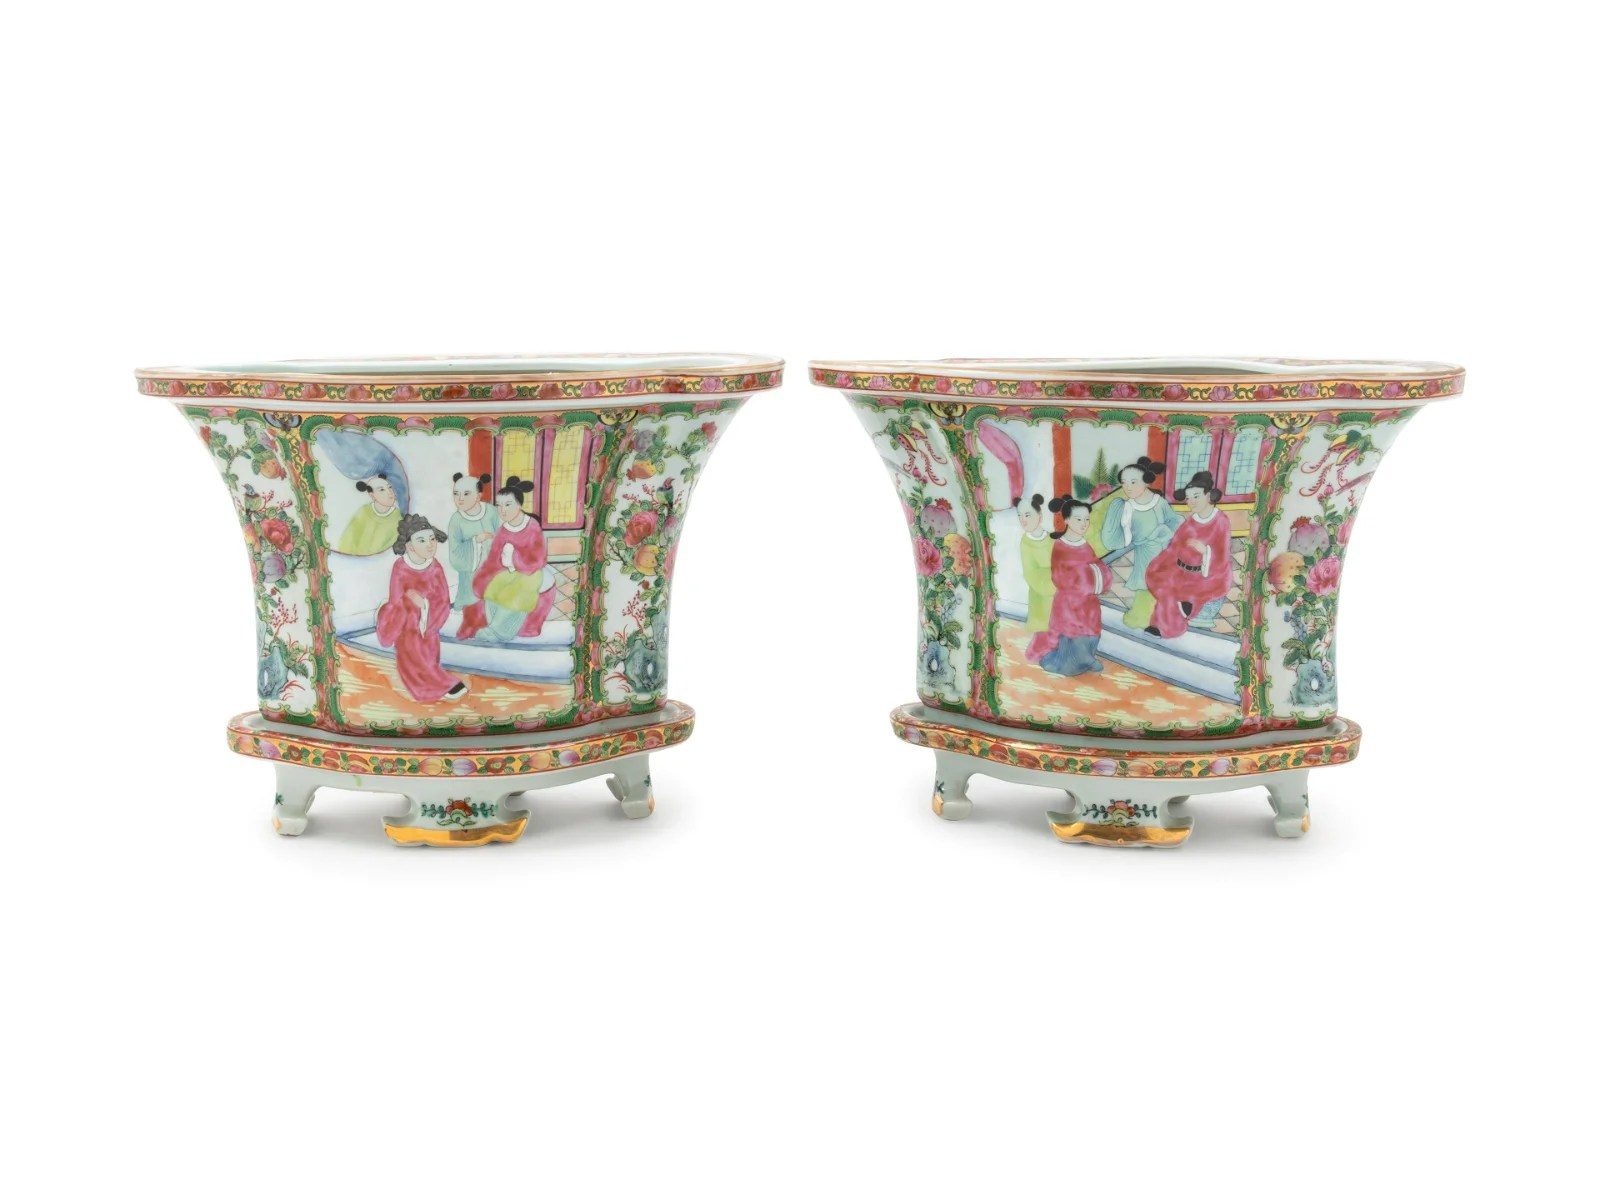 A Pair of Chinese Rose Medallion Porcelain Jardinieres